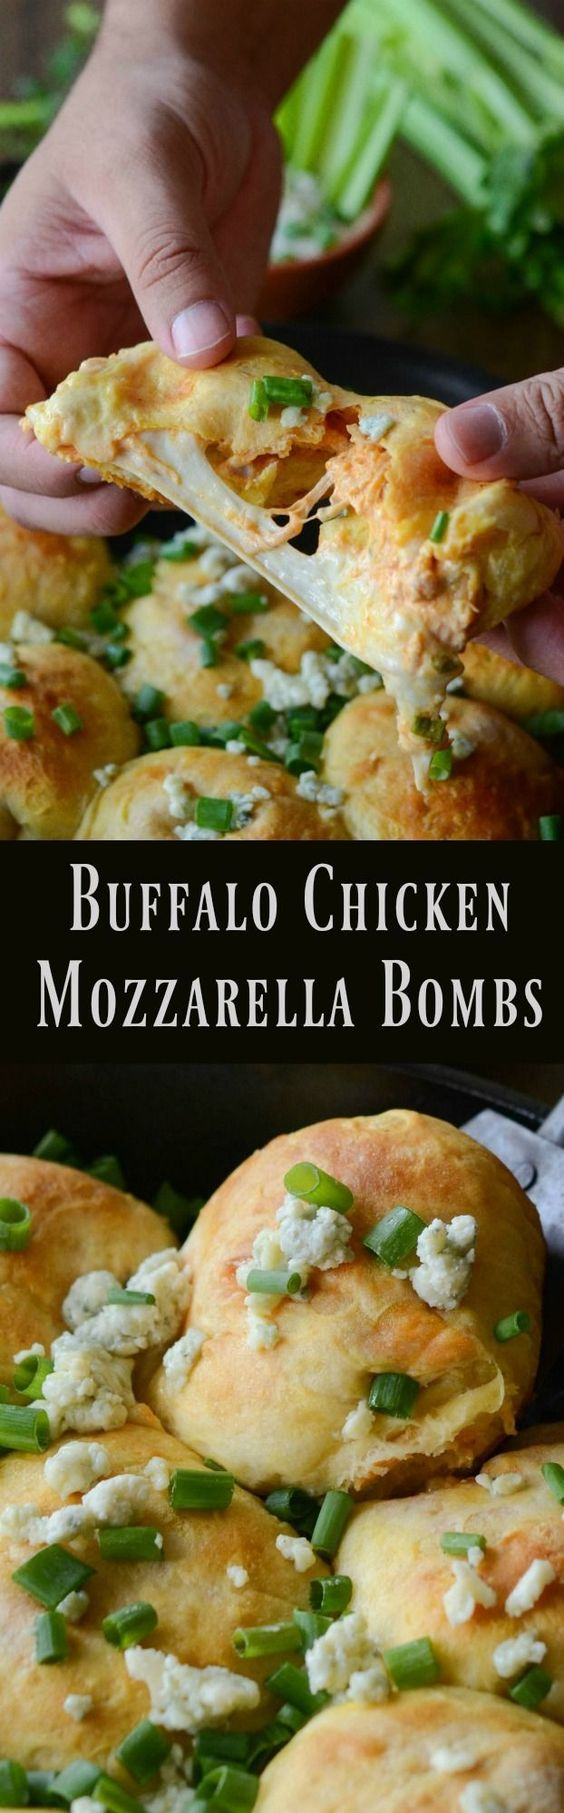 """biscuit dough is stuffed with buffalo chicken, blue cheese and fresh mozzarella"" Buffalo Chicken Mozzarella Bombs Recipe via The Novice Chef - The Best Homemade Biscuits Recipes - Quick, Easy and Delicious Bread Sides for Breakfast, Brunch, Lunch and Family Dinner! #biscuits #biscuitrecipes #homemdebiscuits #easybiscuits #rolls #homemadebreadsides #bread #breakfastrecipes #comfortfood"